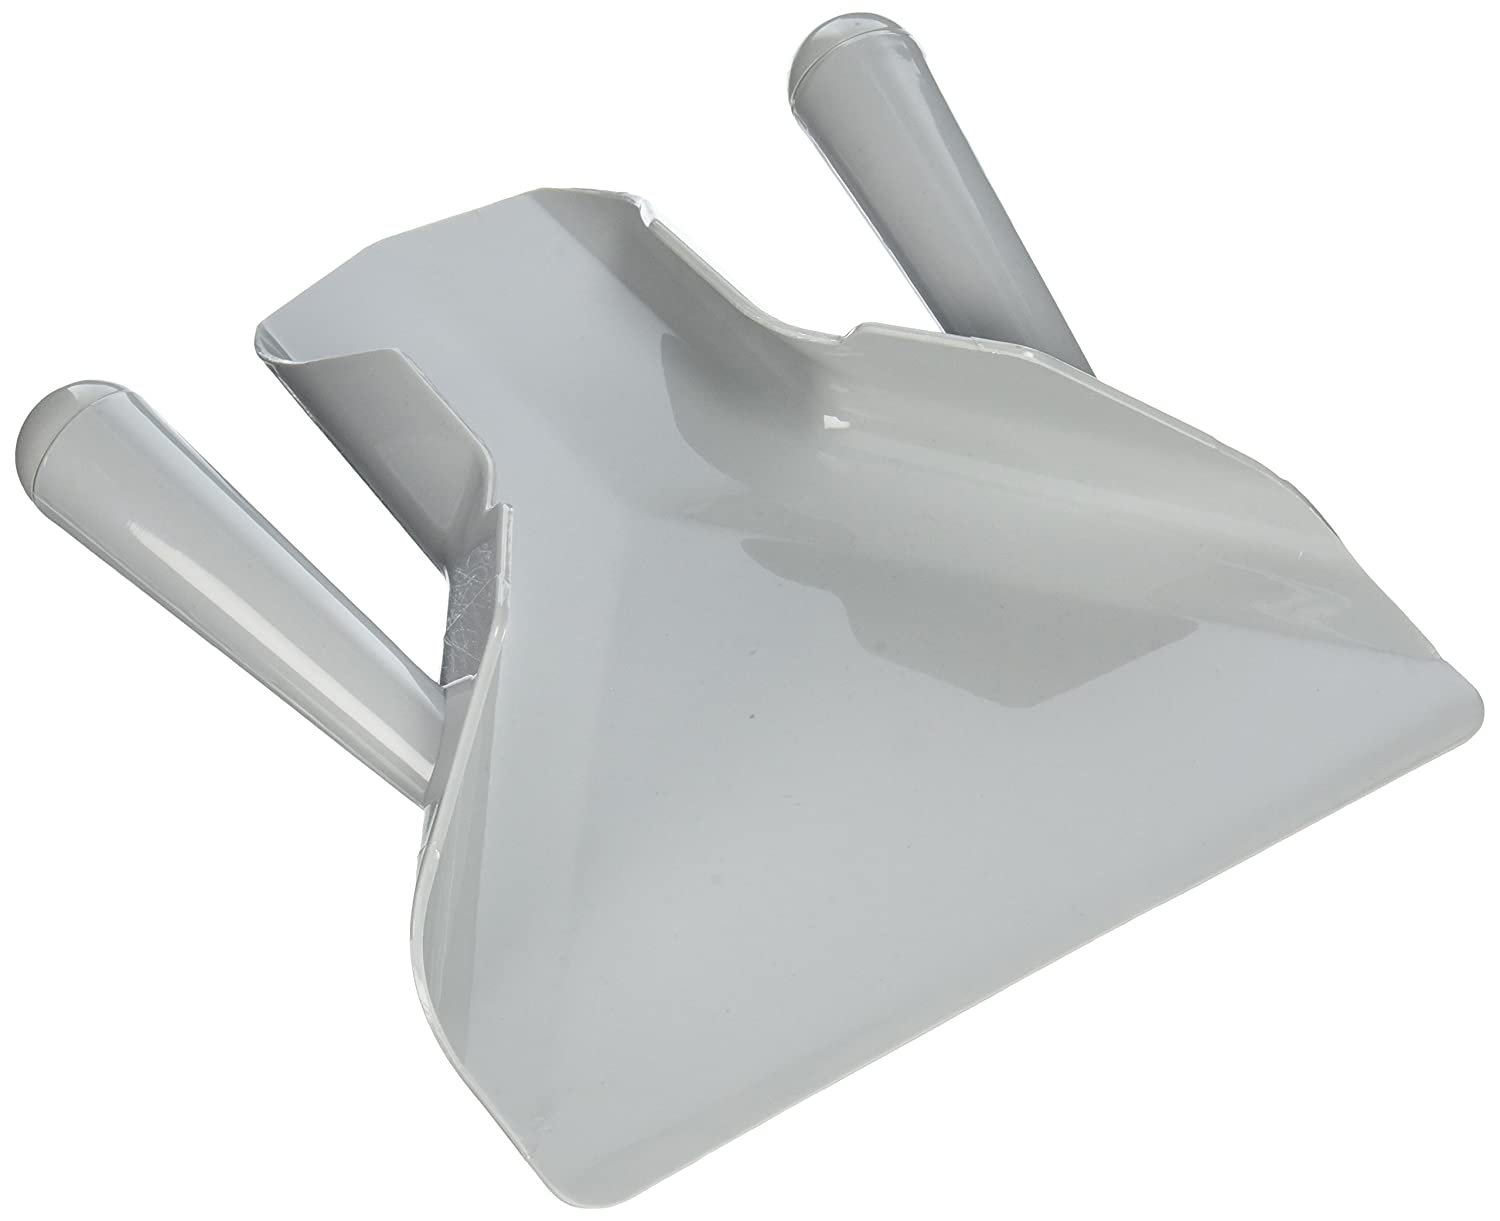 New Star 37791 Polycarbonate Commercial French Fry Bagger, Dual Handle